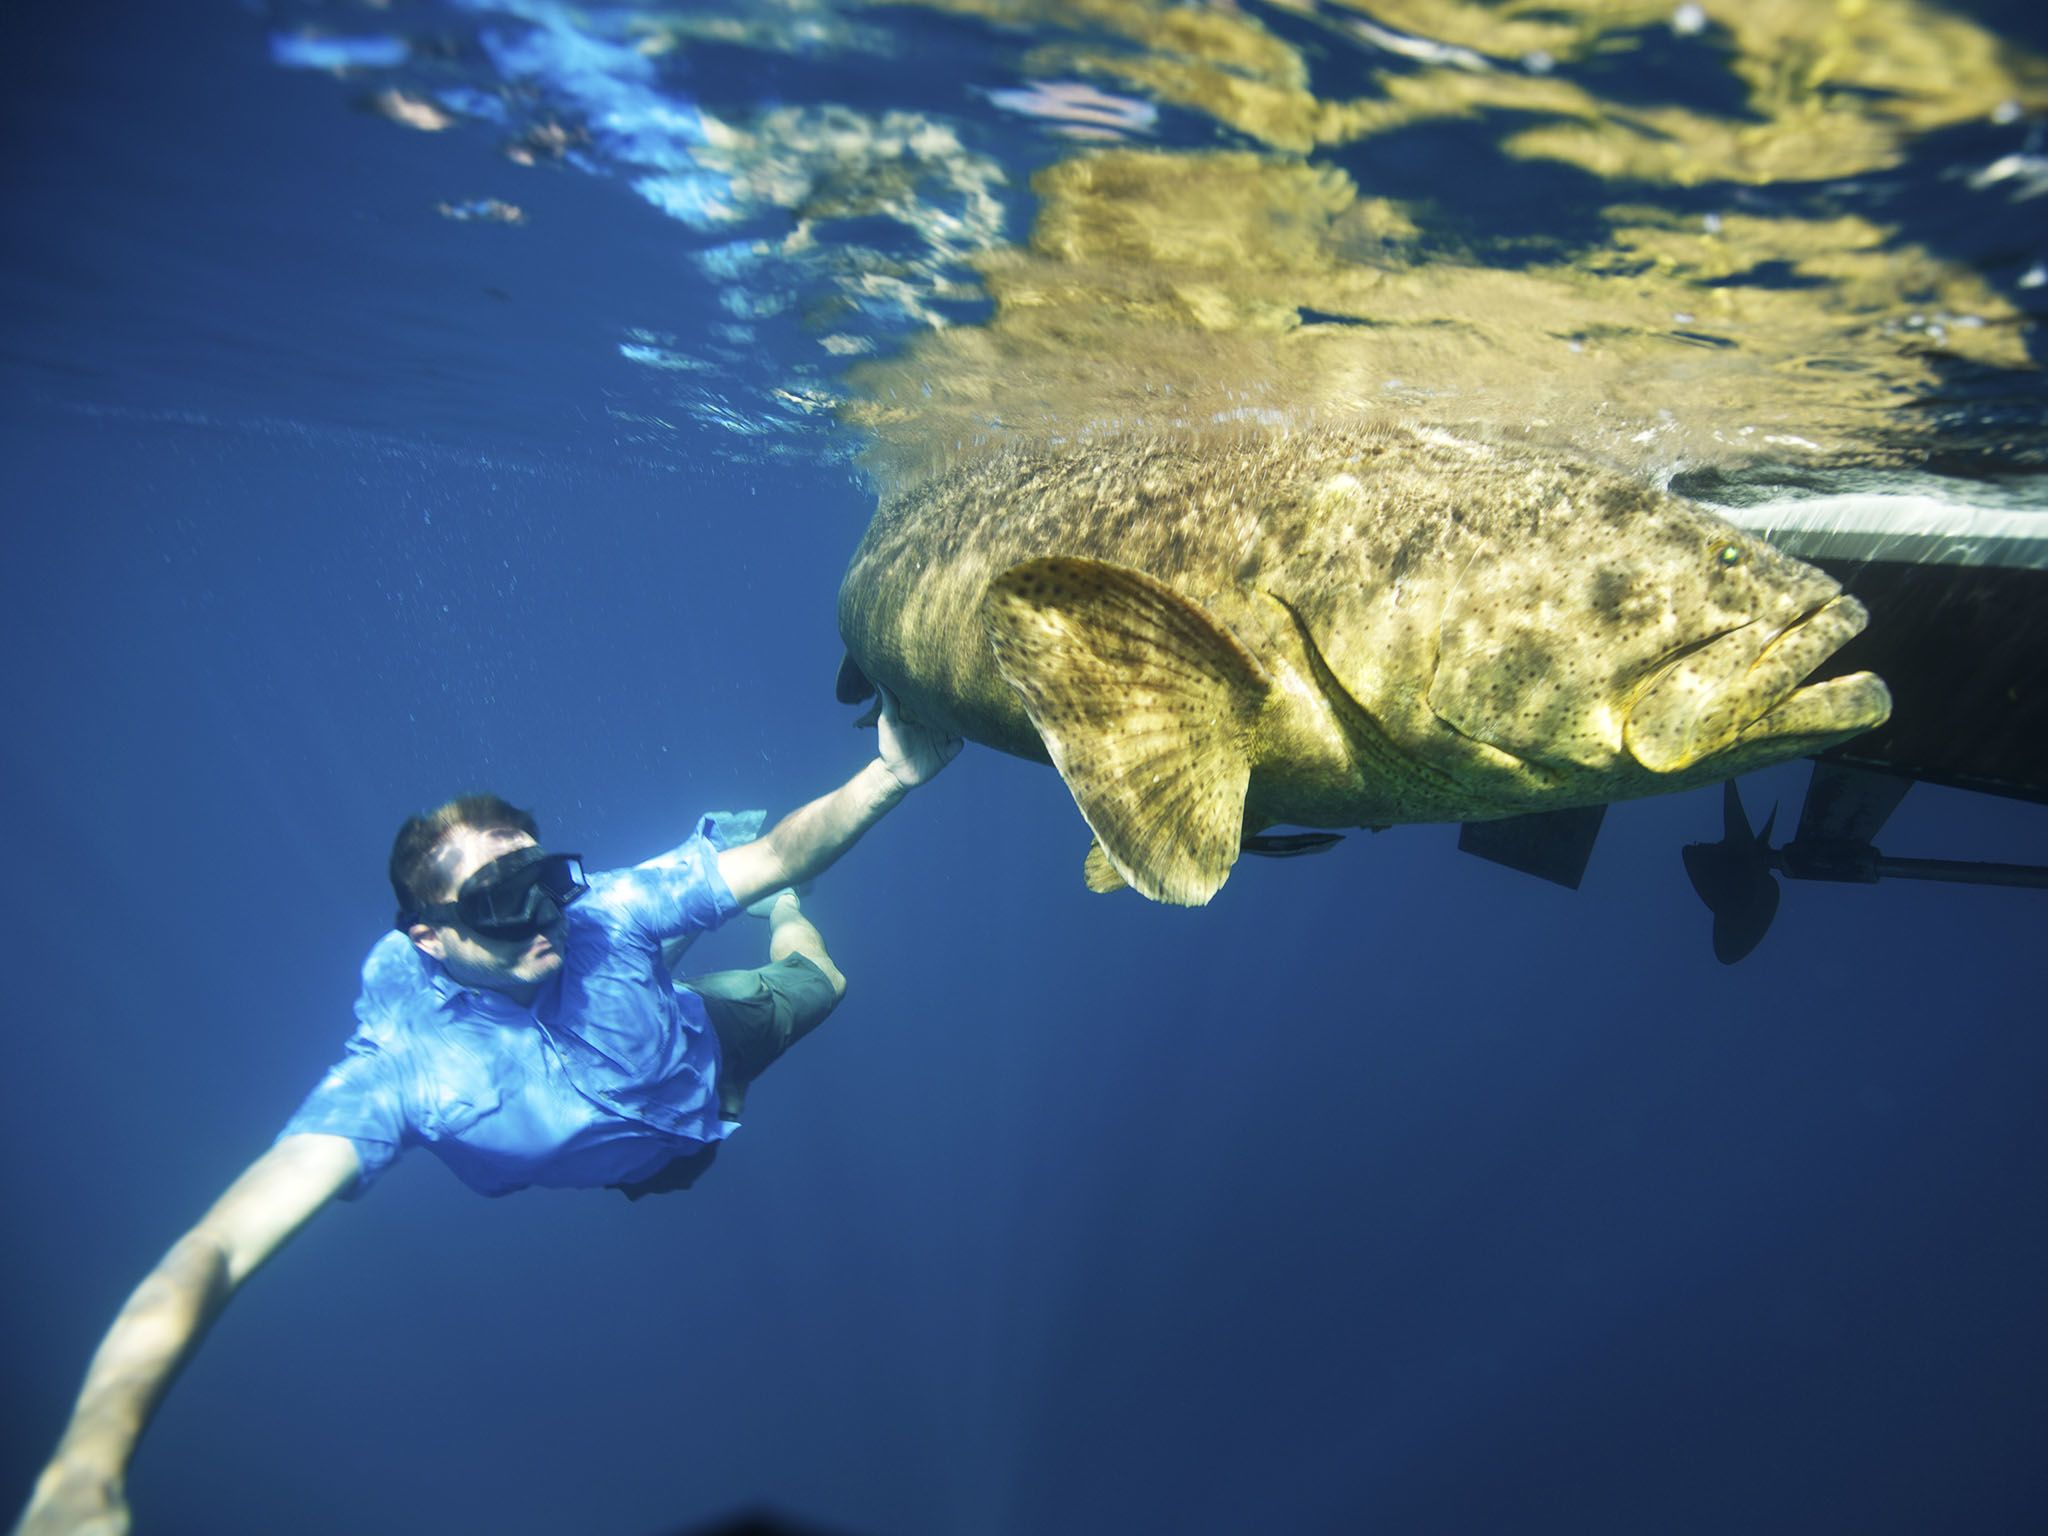 Fla.:  Zeb swims with a Goliath Grouper. The Goliath Grouper is listed as a Critically... [Photo of the day - April 2016]